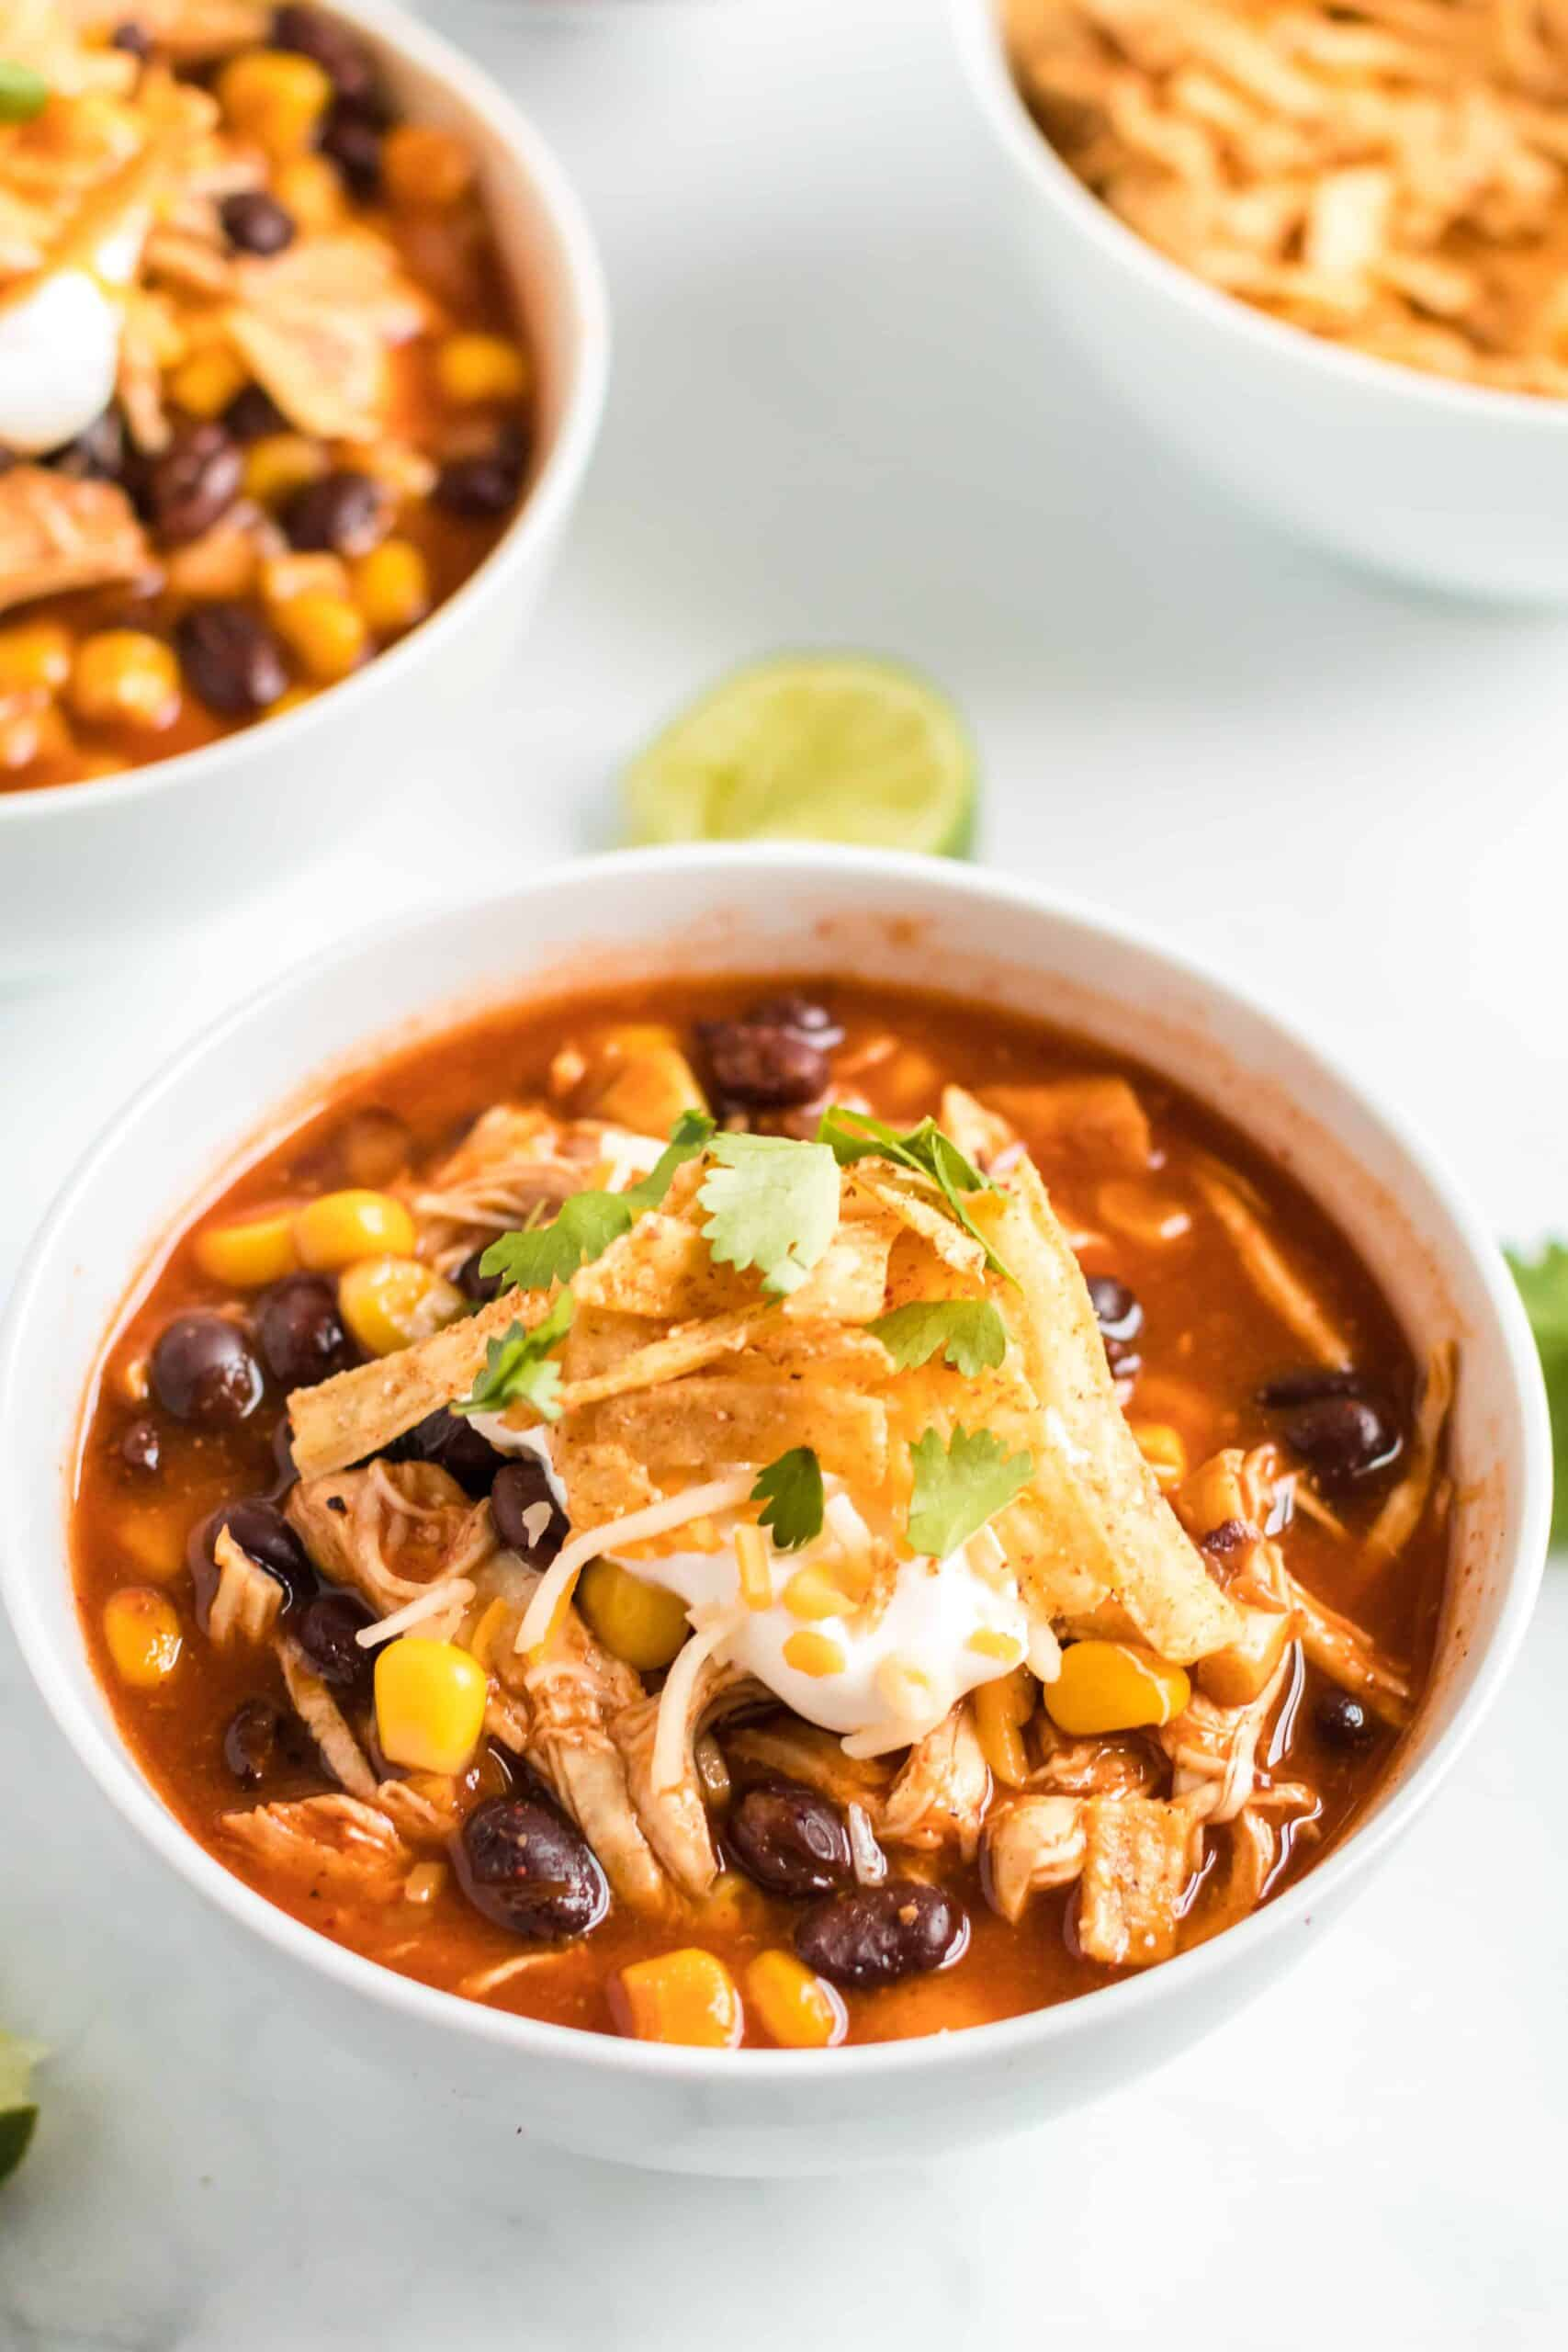 Chicken Enchilada Soup in a bowl, garnished with cheese, yogurt, tortilla strips and cilantro. Made in the slow cooker.